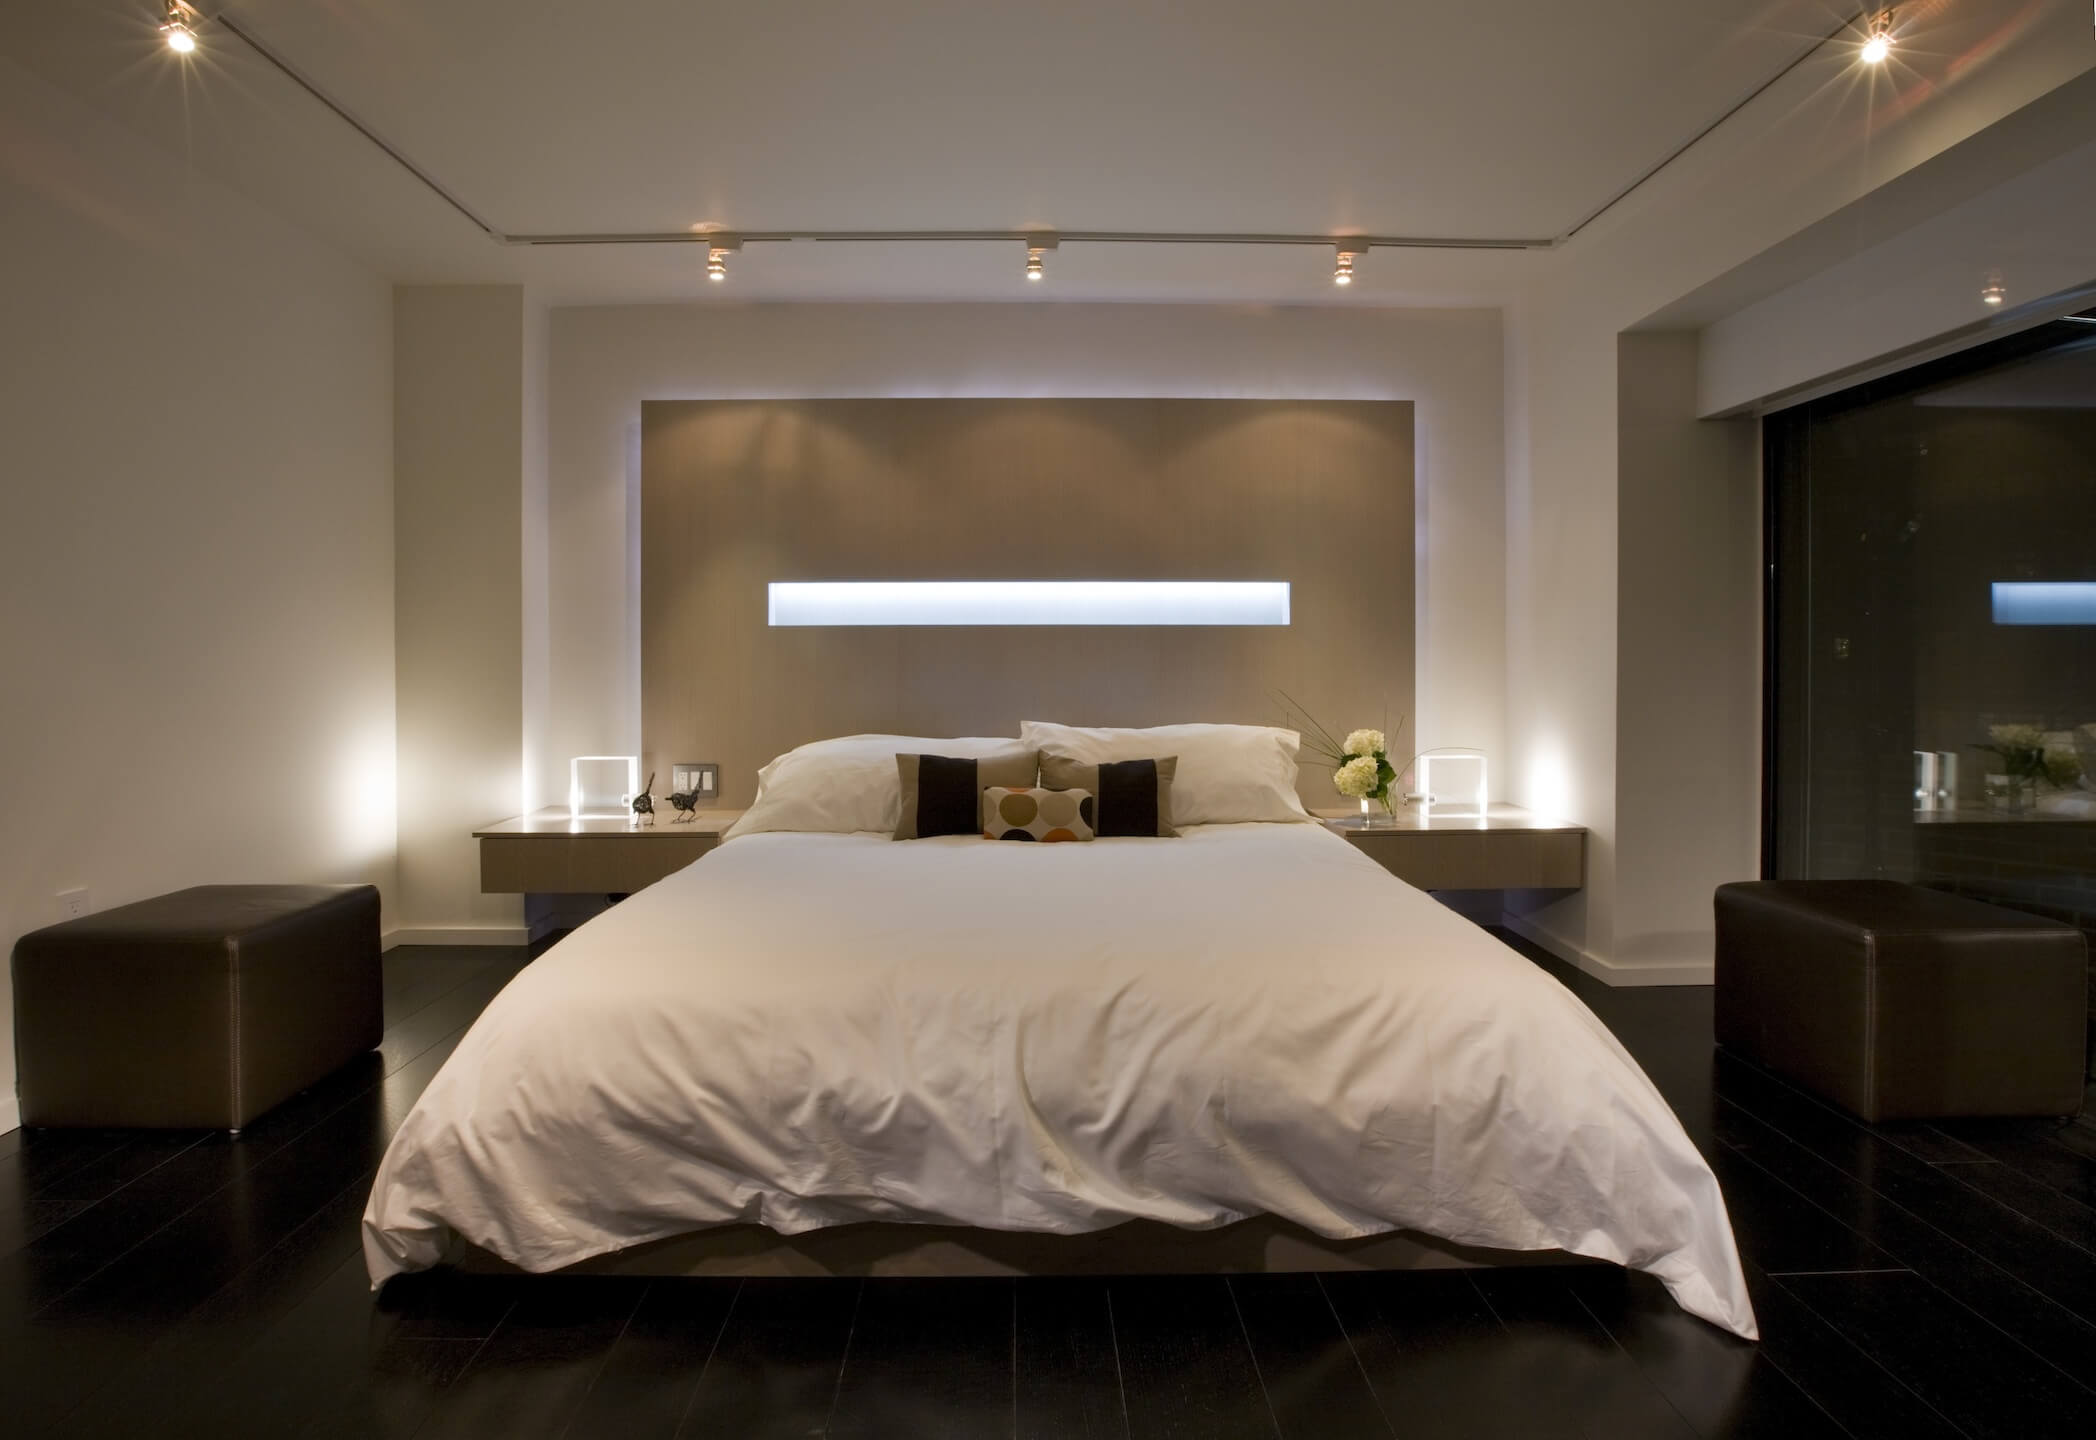 Head-on view of master bedroom, showcasing white-covered bed in front of monolithic wall detail containing horizontal light strip. Large dark leather ottomans stand on each side.